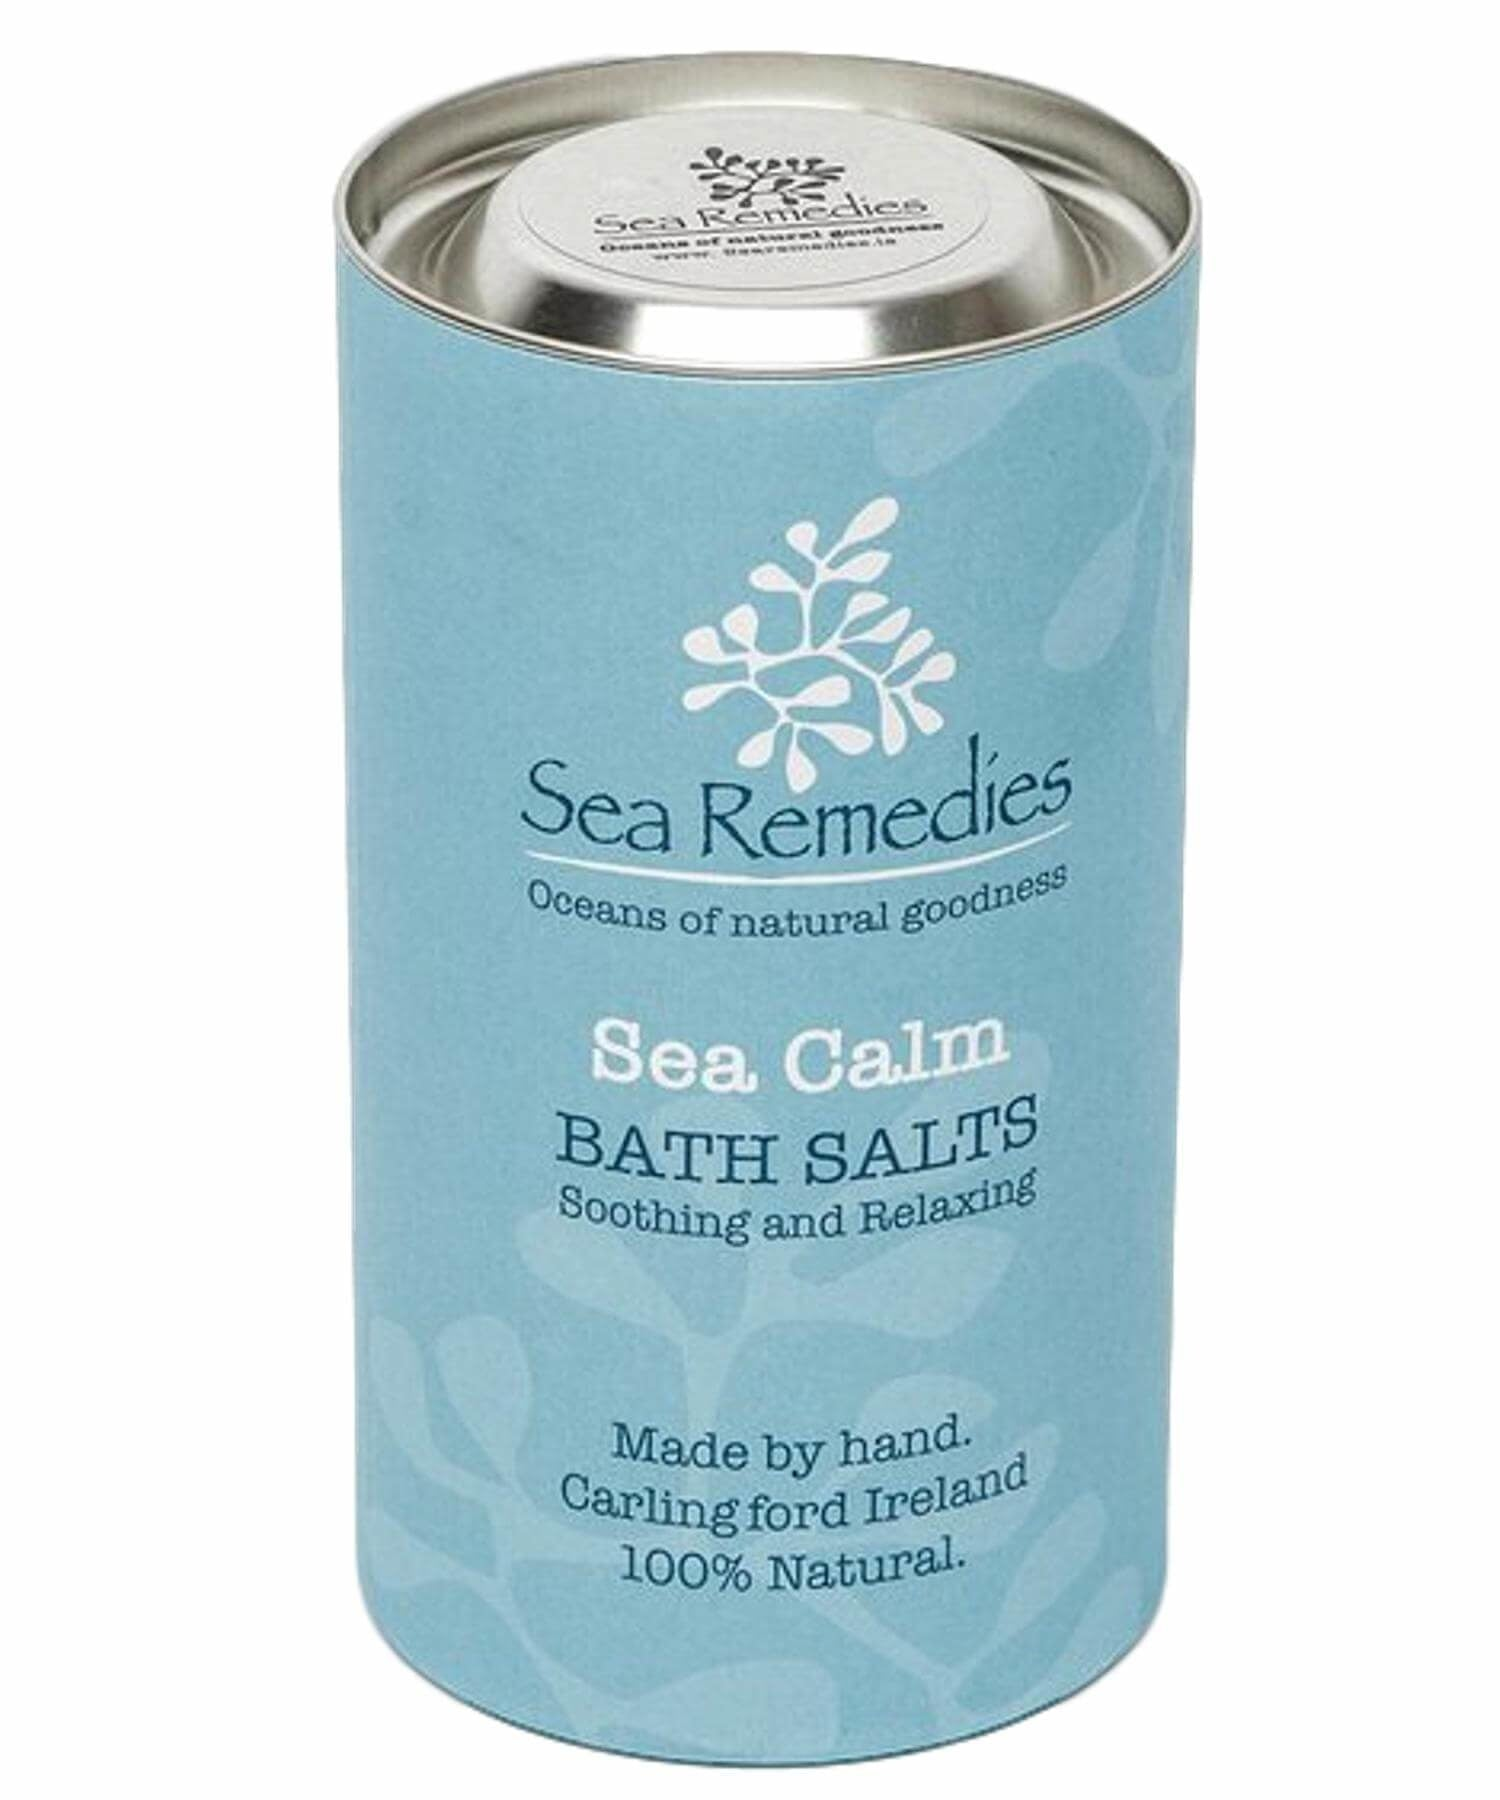 Bath Salts - Calm - [Sea Remedies] - Skincare & Beauty - Irish Gifts